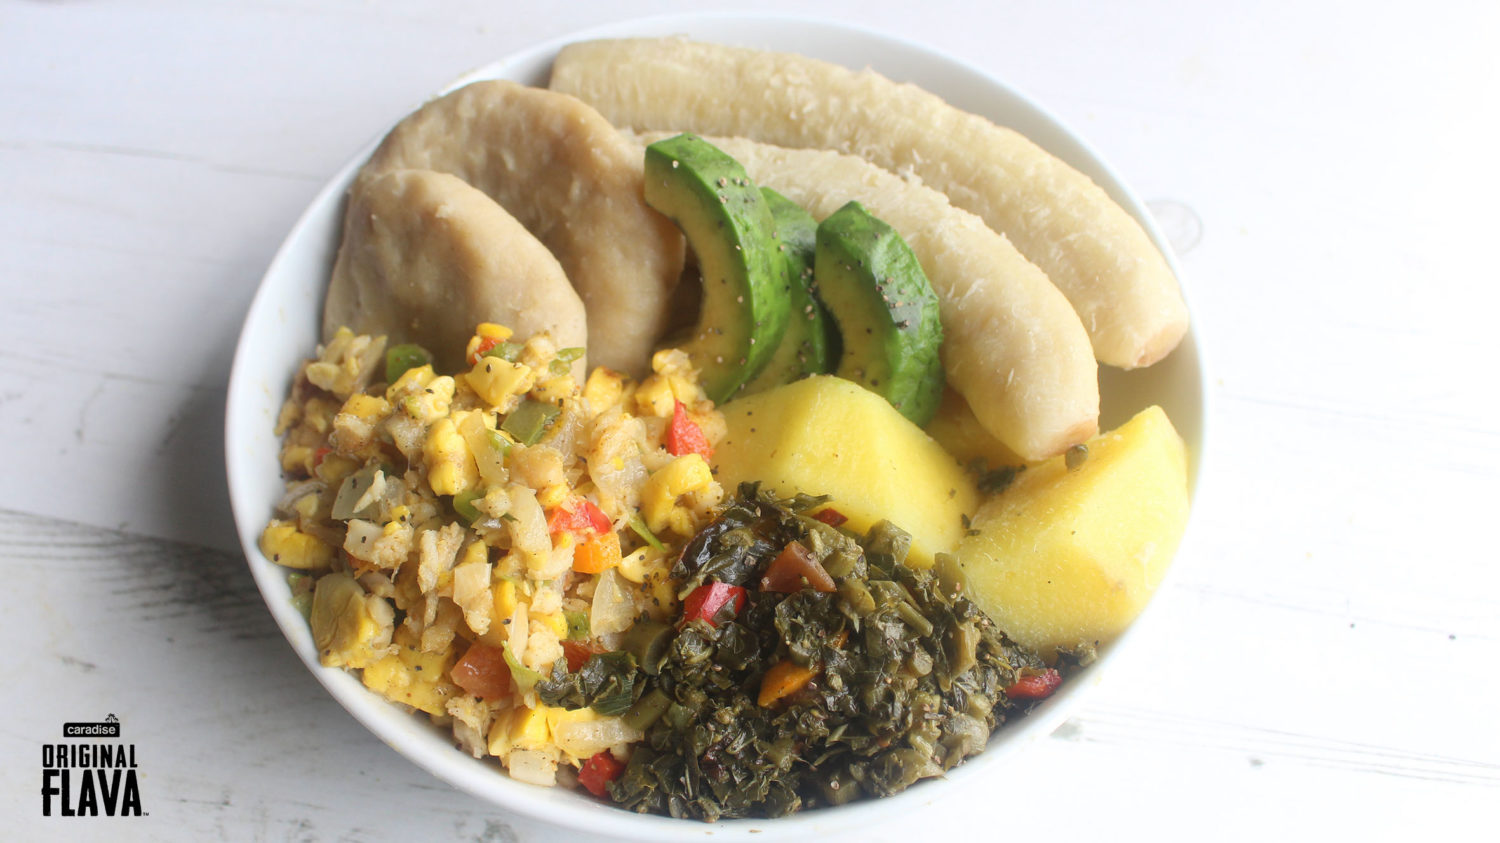 Cuisine Yam Jamaican Hard Food Bowl Original Flava